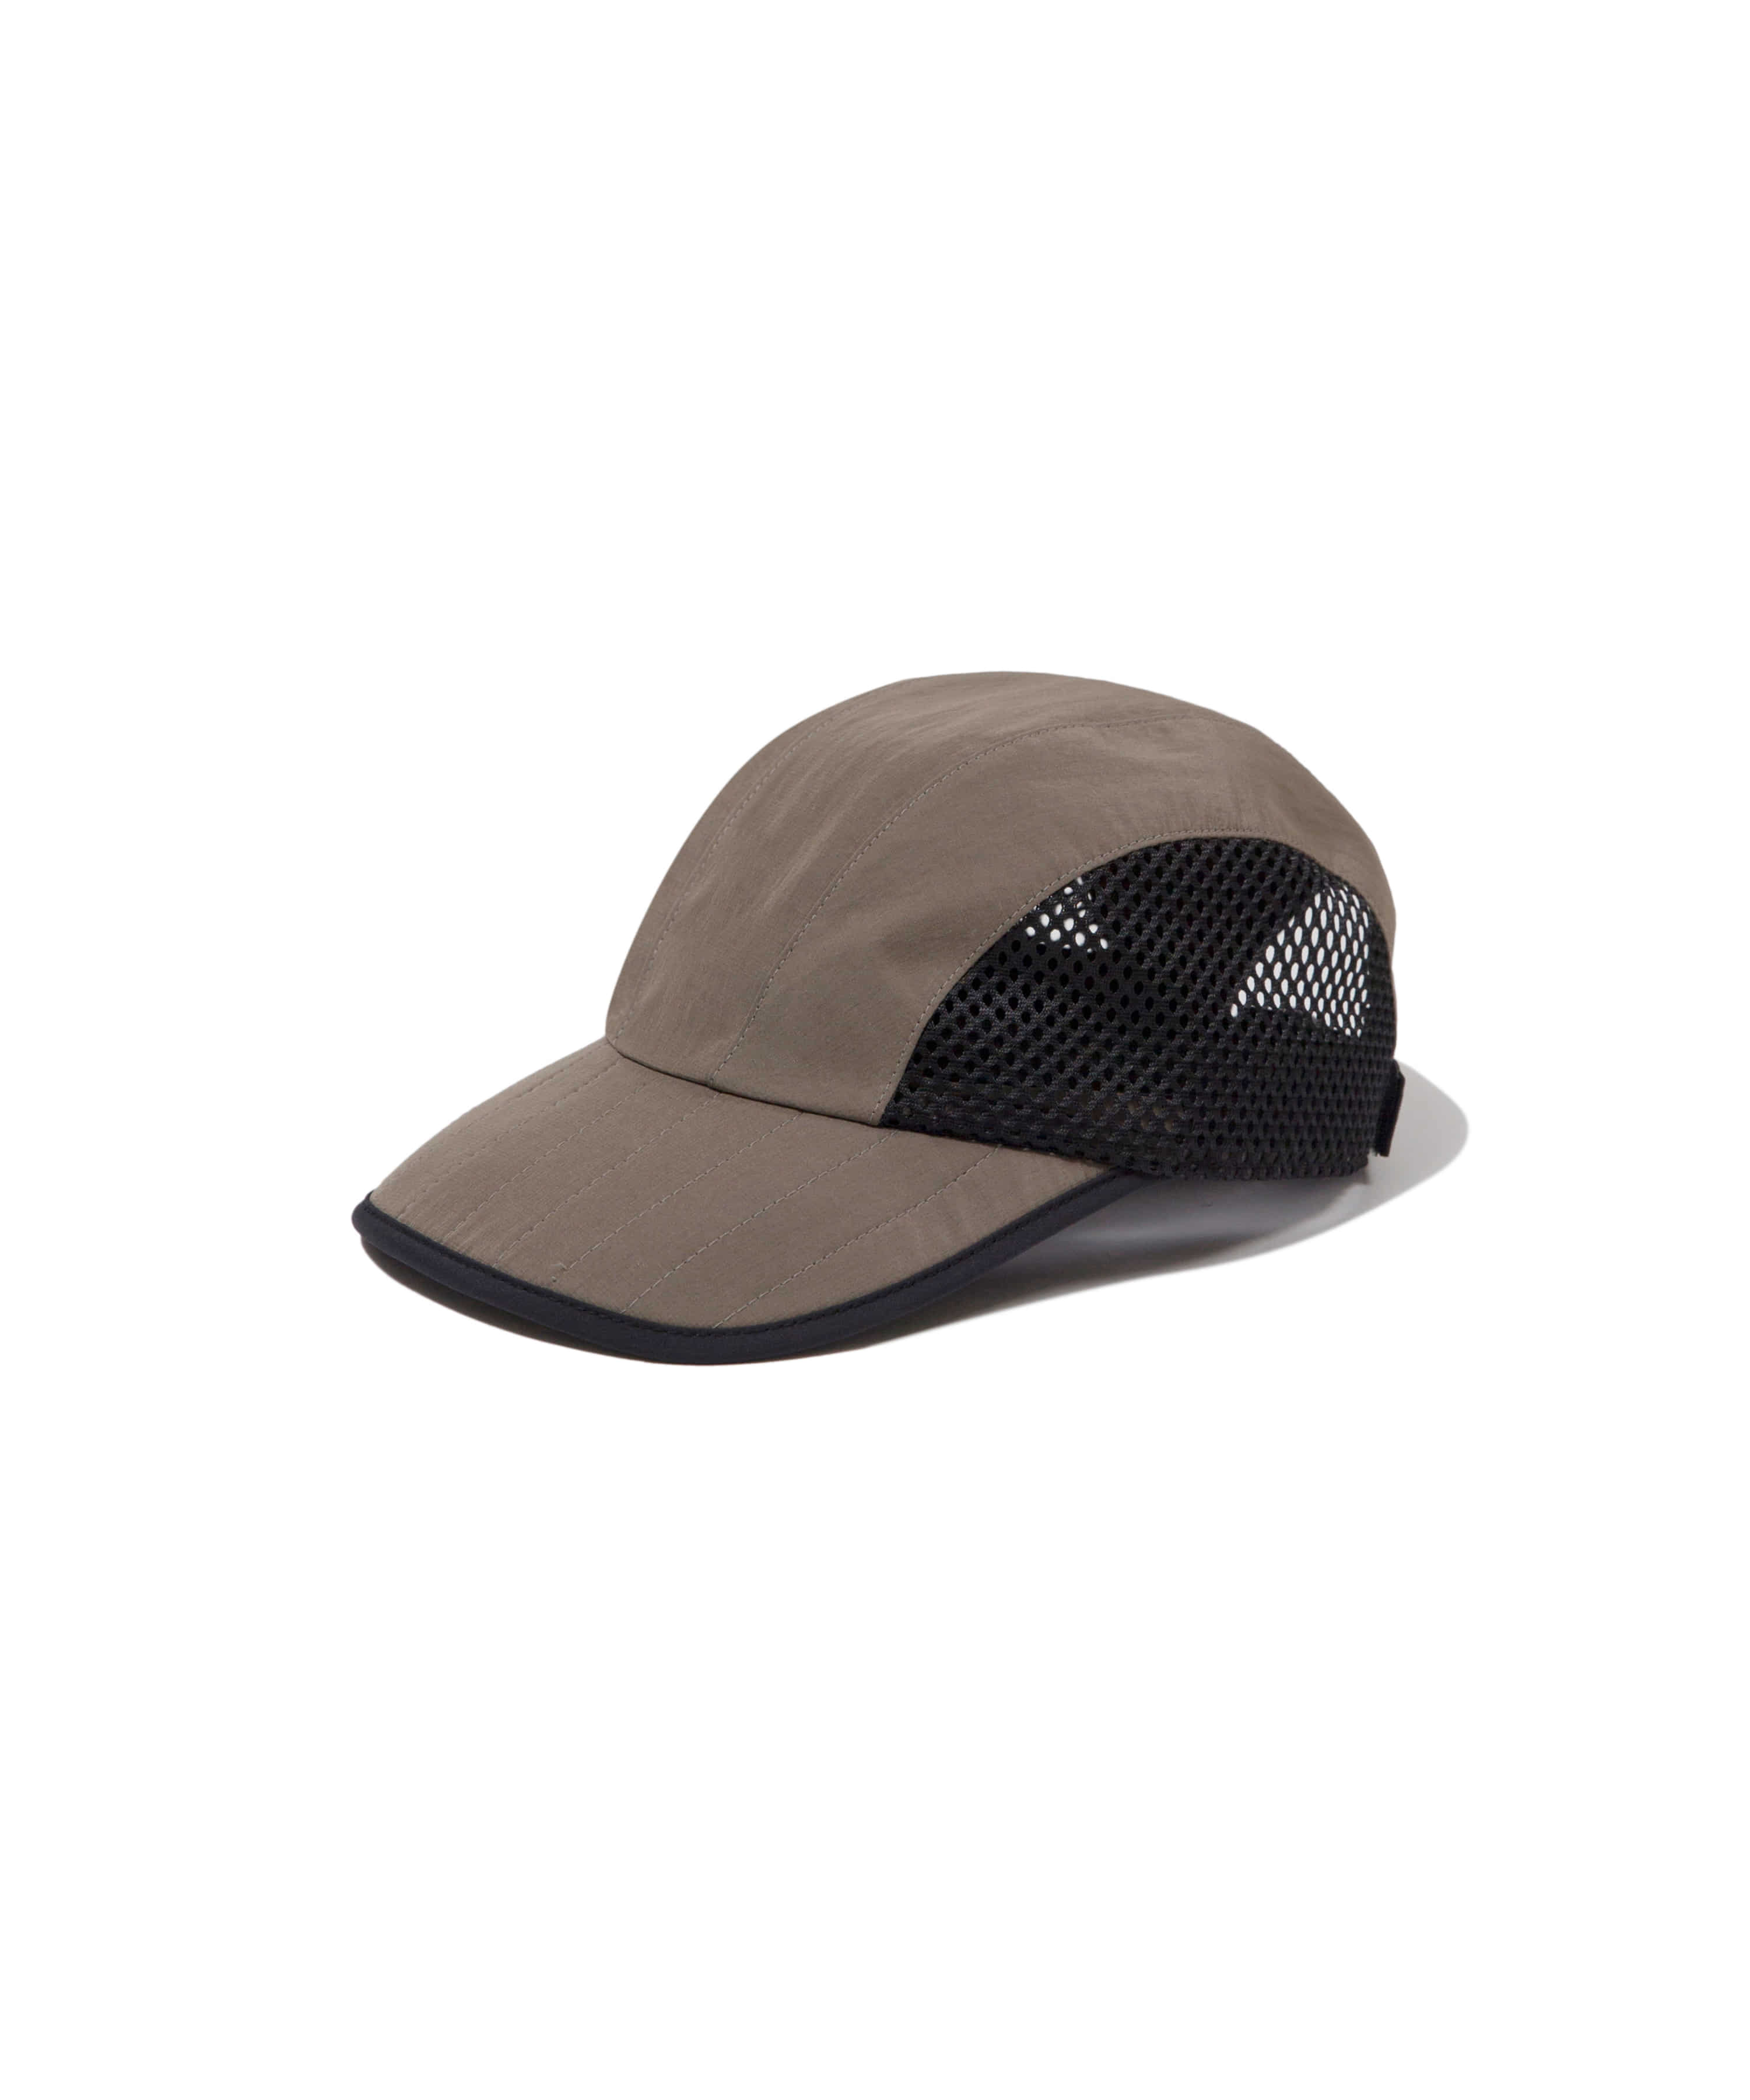 RIPSTOP CAMP CAP BROWN